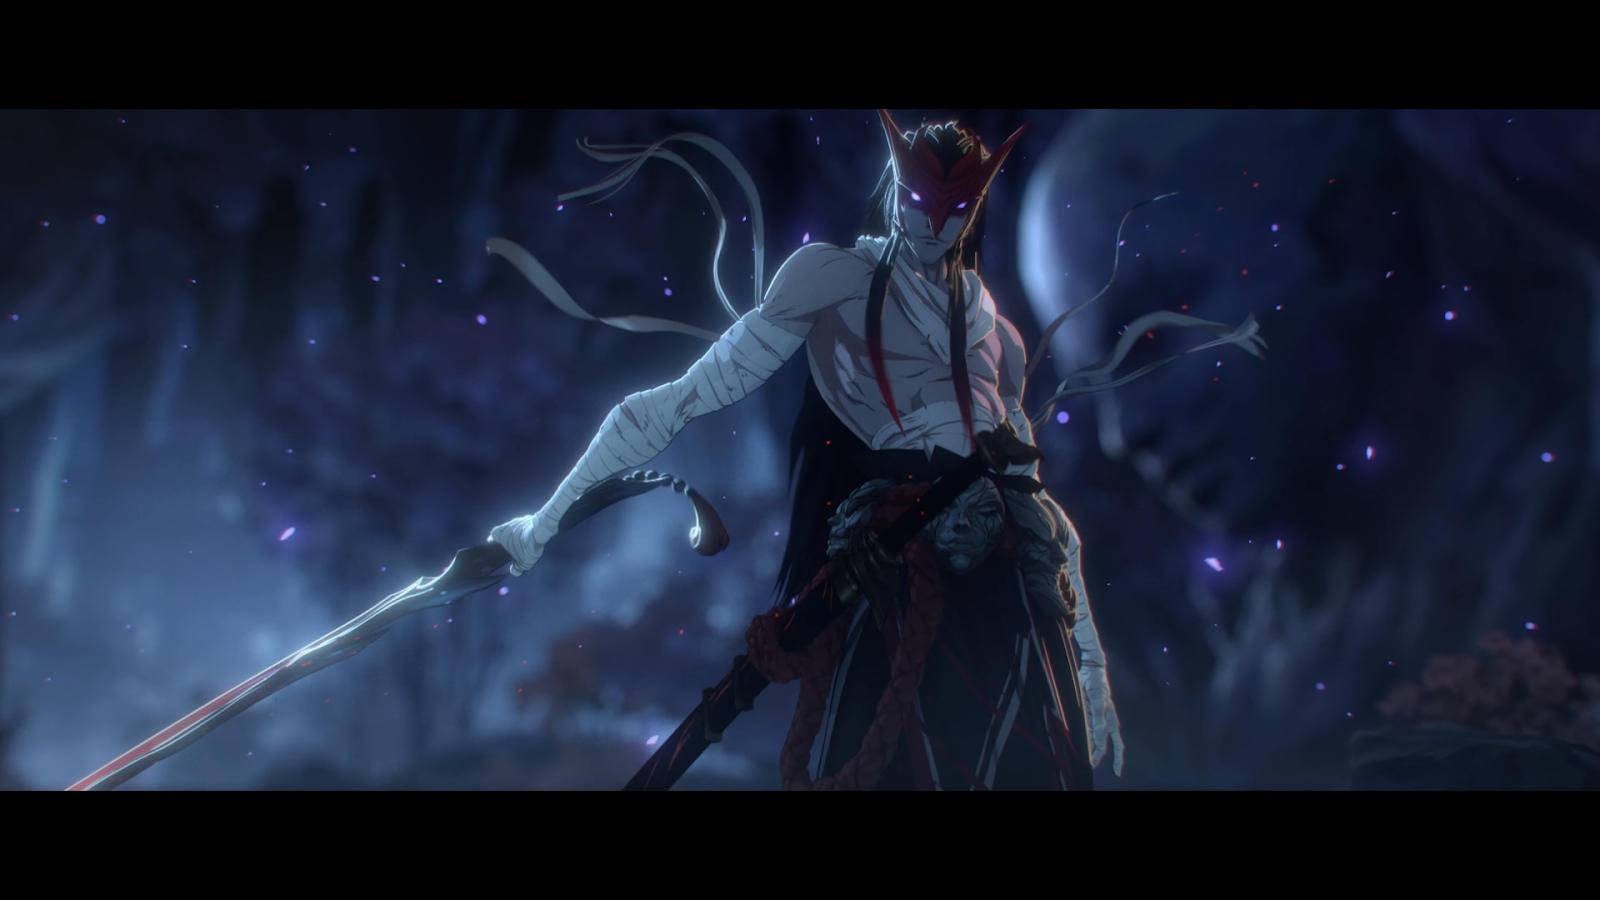 League of Legends Yone - Kin of the Stained Blade | Spirit Blossom 2020 Cinematic